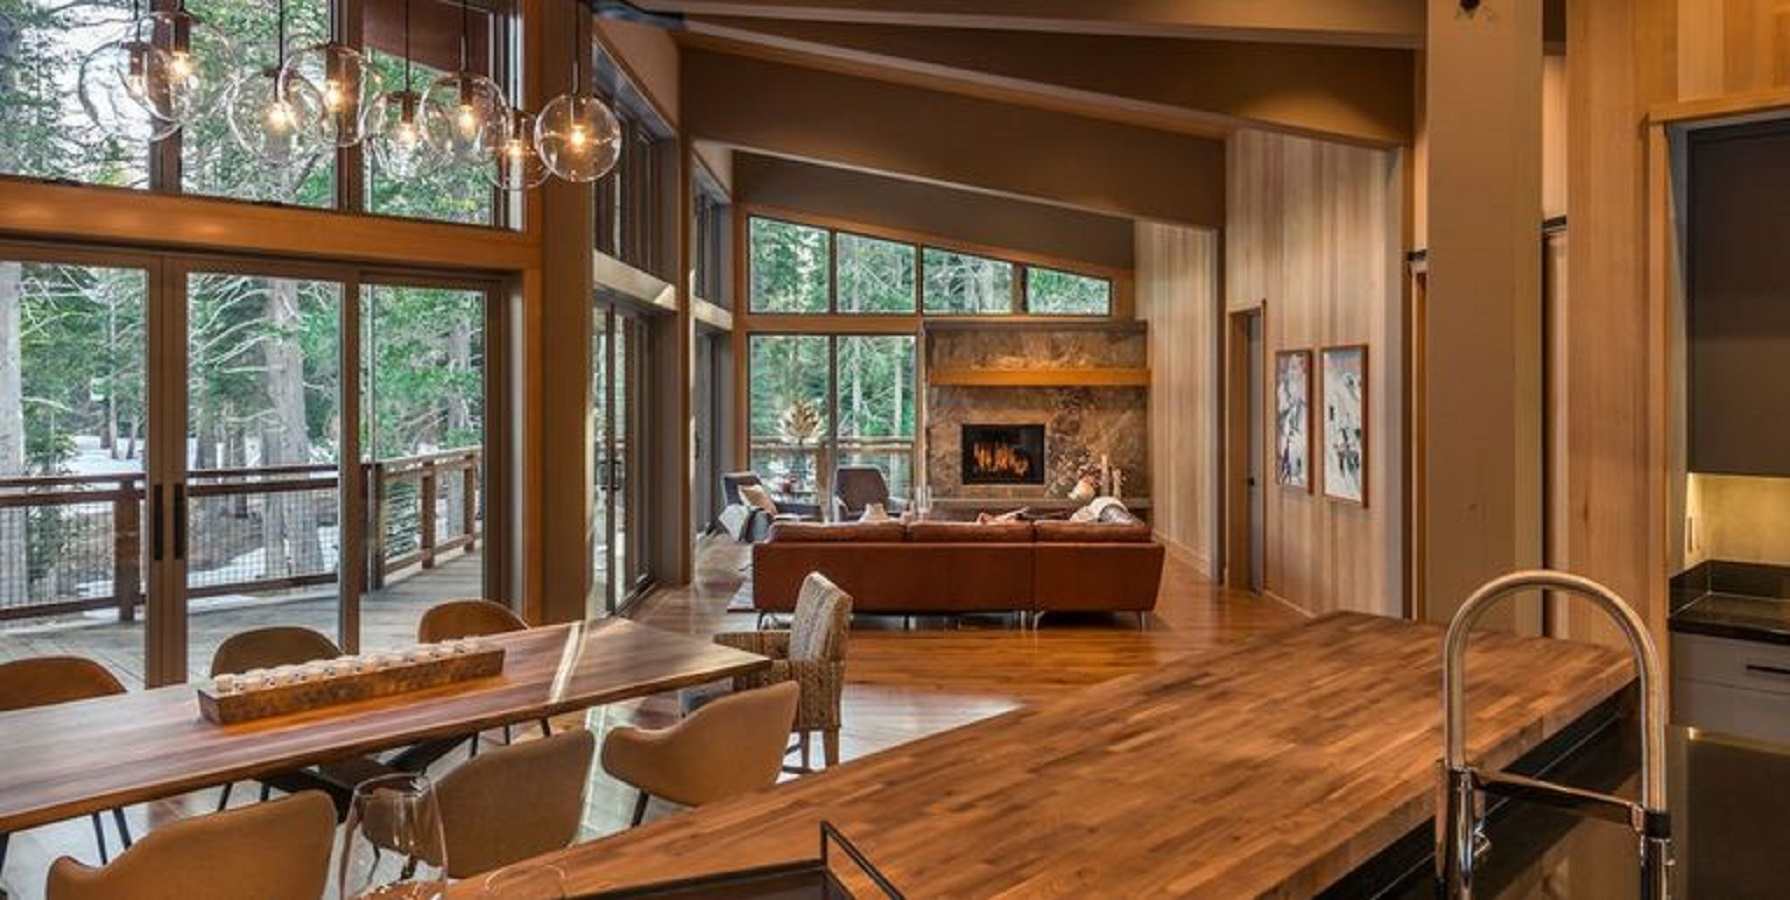 Nature-inspired A New Way To Enjoy The Wood Kitchens That Is Definitely Charming